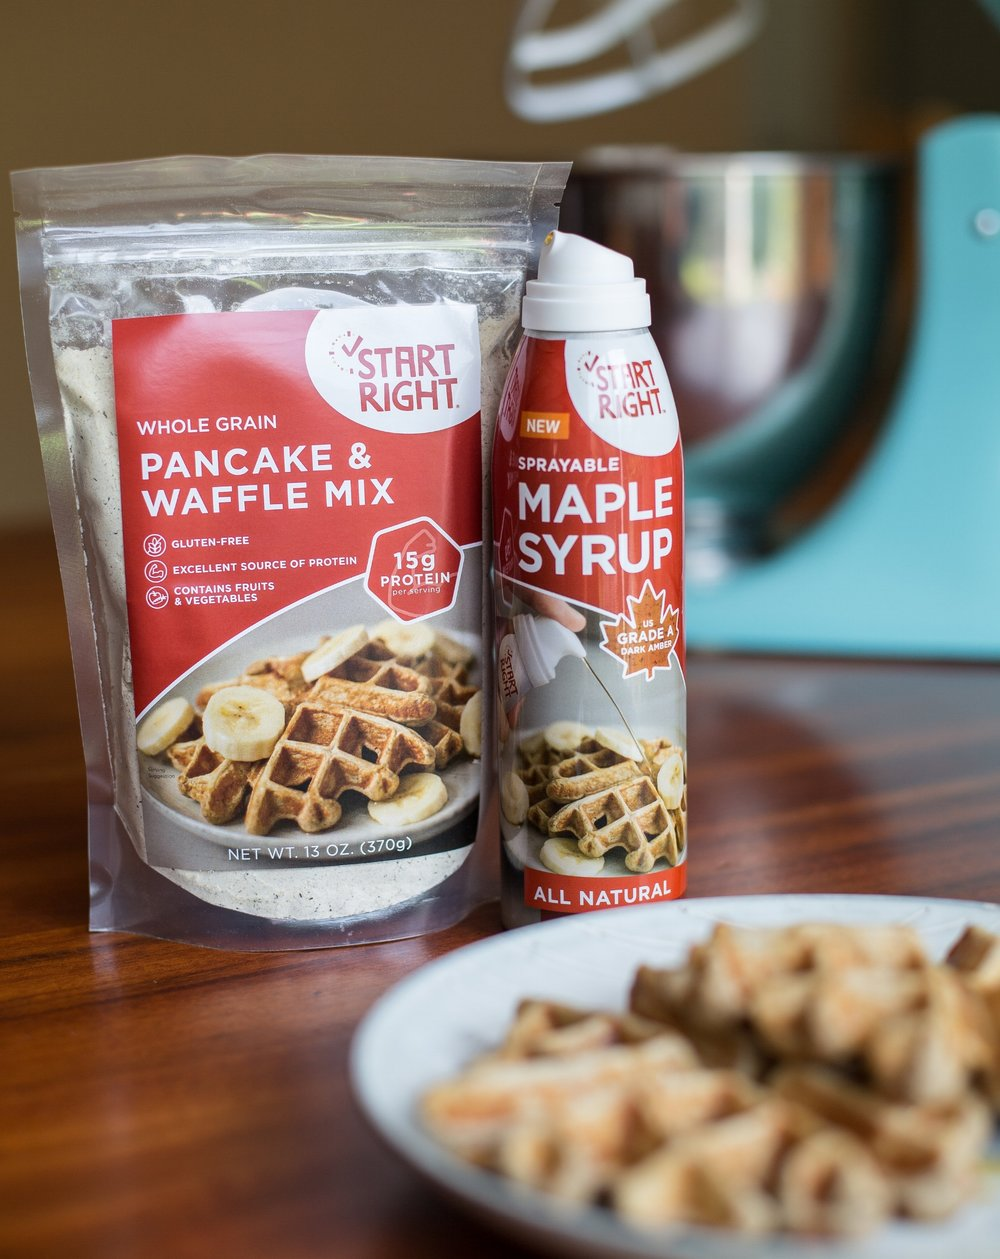 High Protein Waffles, high protein waffle mix, sprayable maple syrup, maple syrup, pure maple syrup, gluten free waffle mix, gluten free, gluten free pancakes